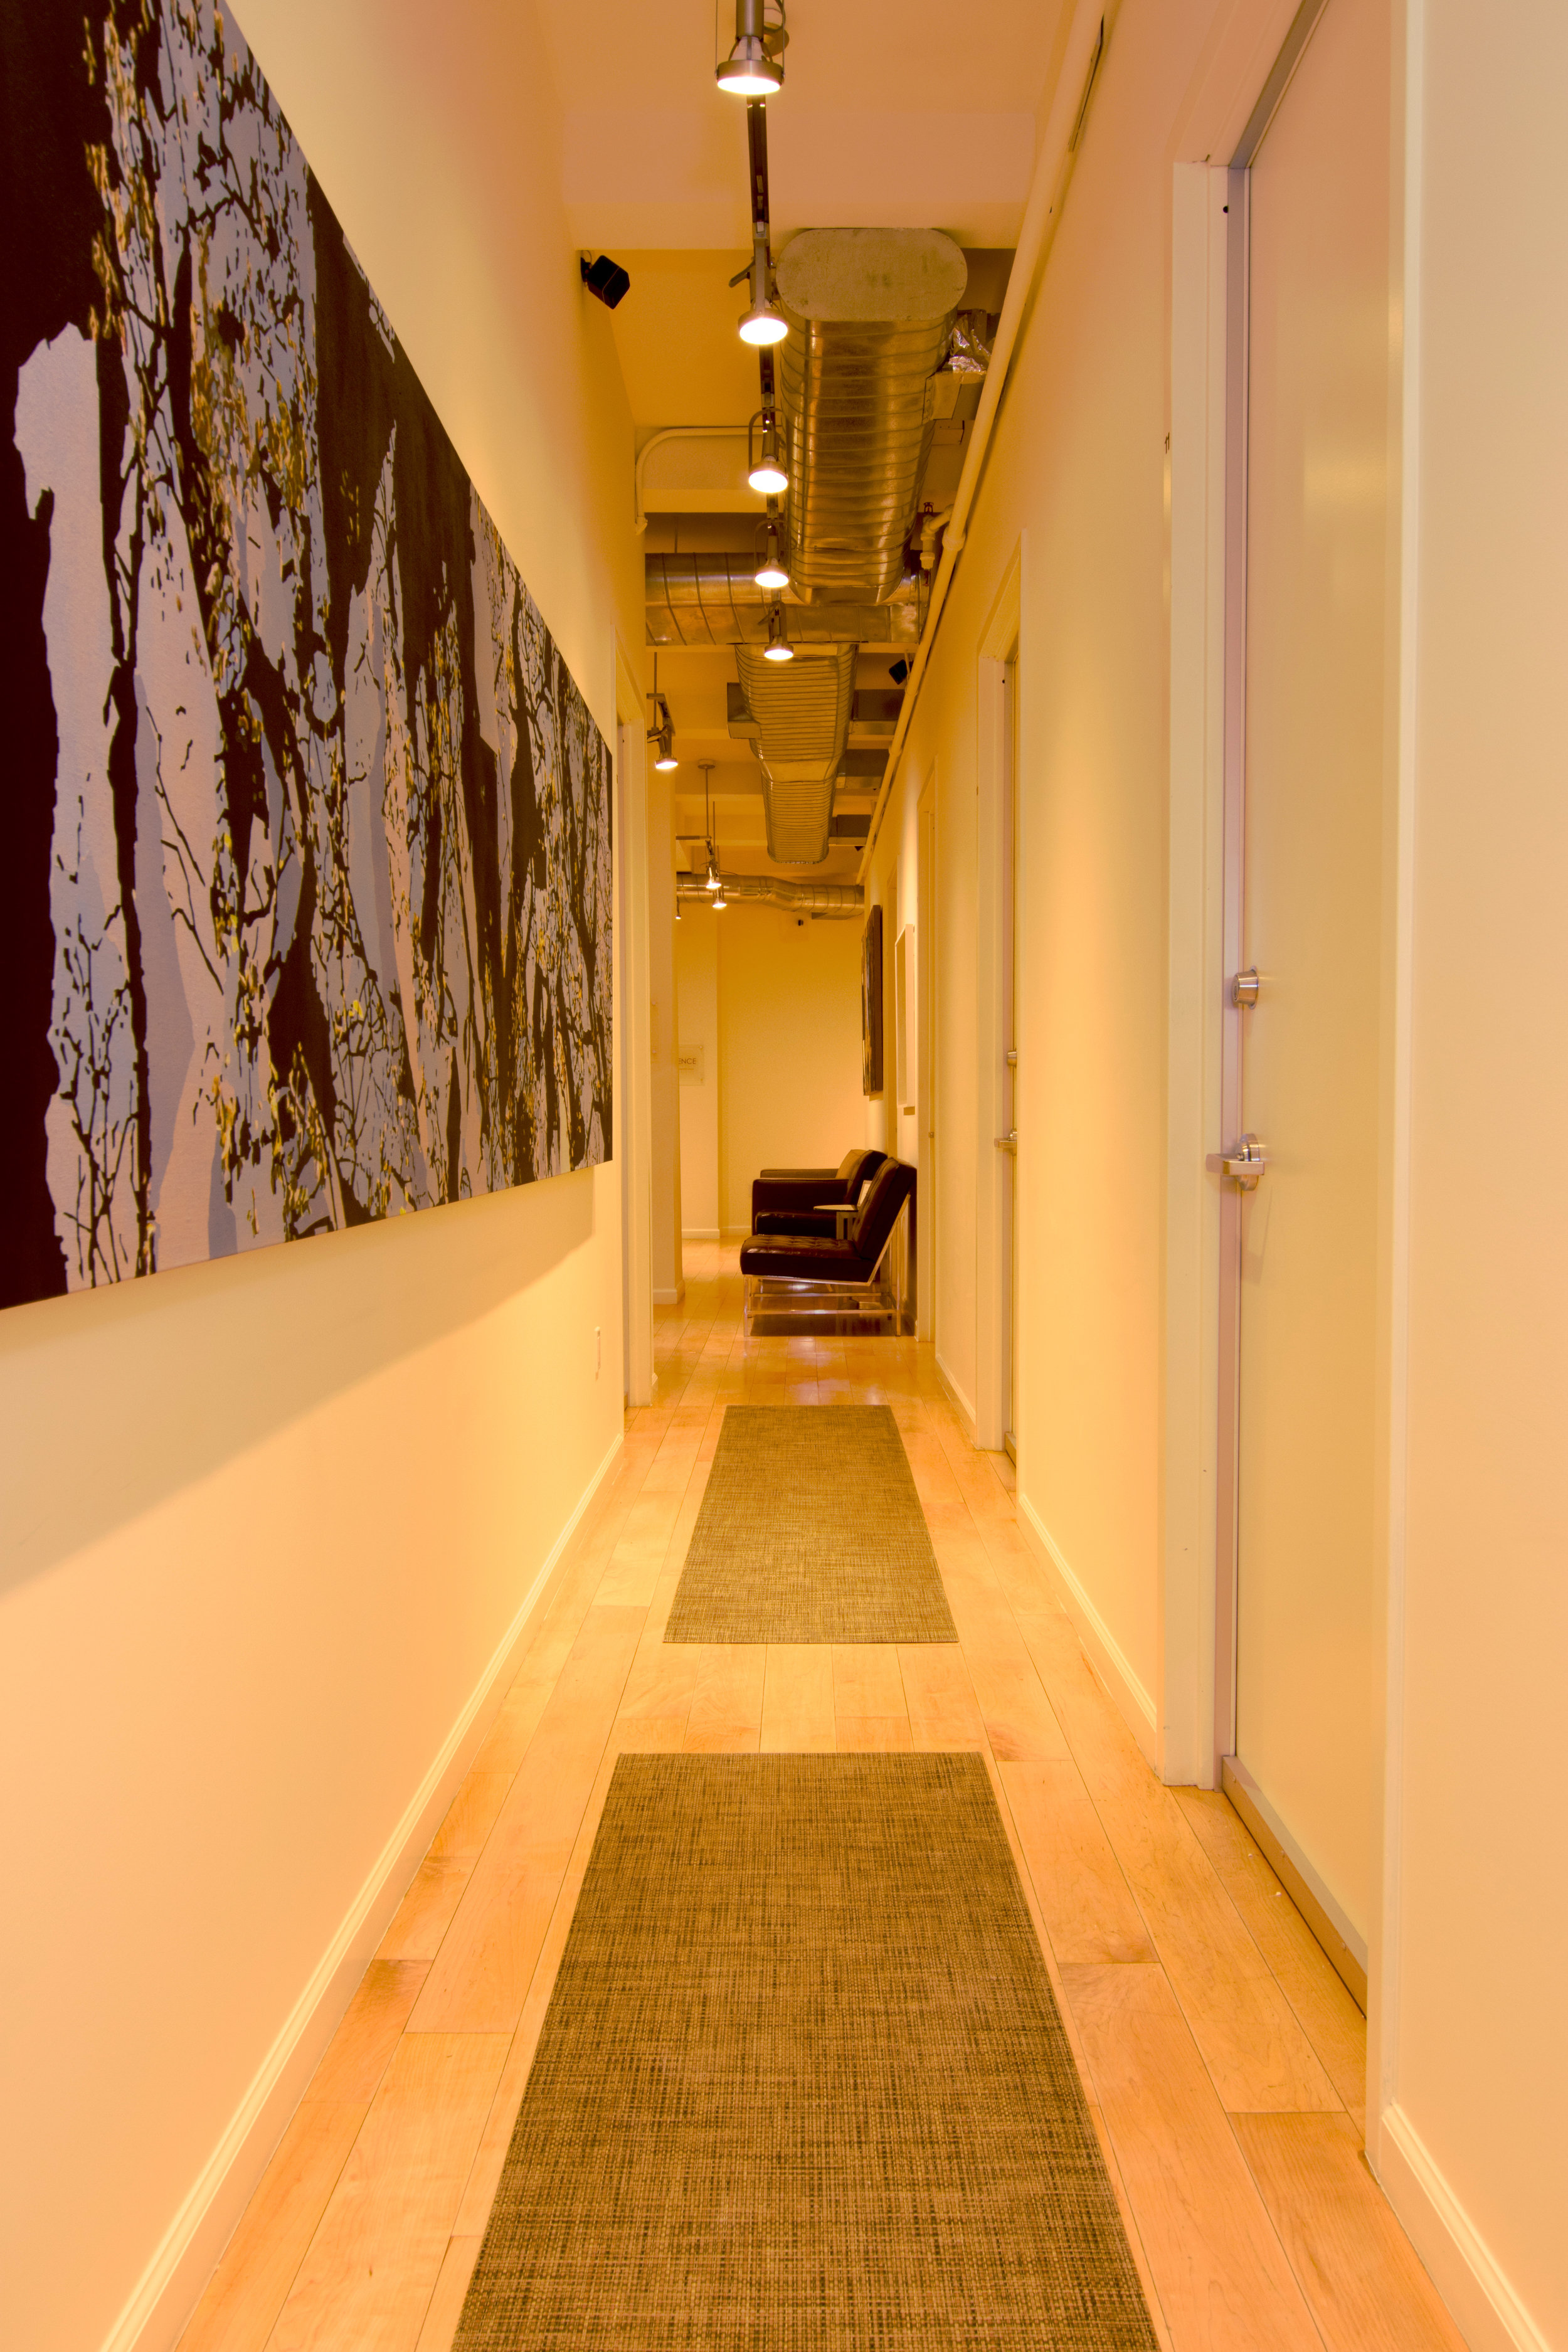 serene-offices-therapy-office-flatiron-21st-street-waiting-room-hallway-2-chairs.jpg